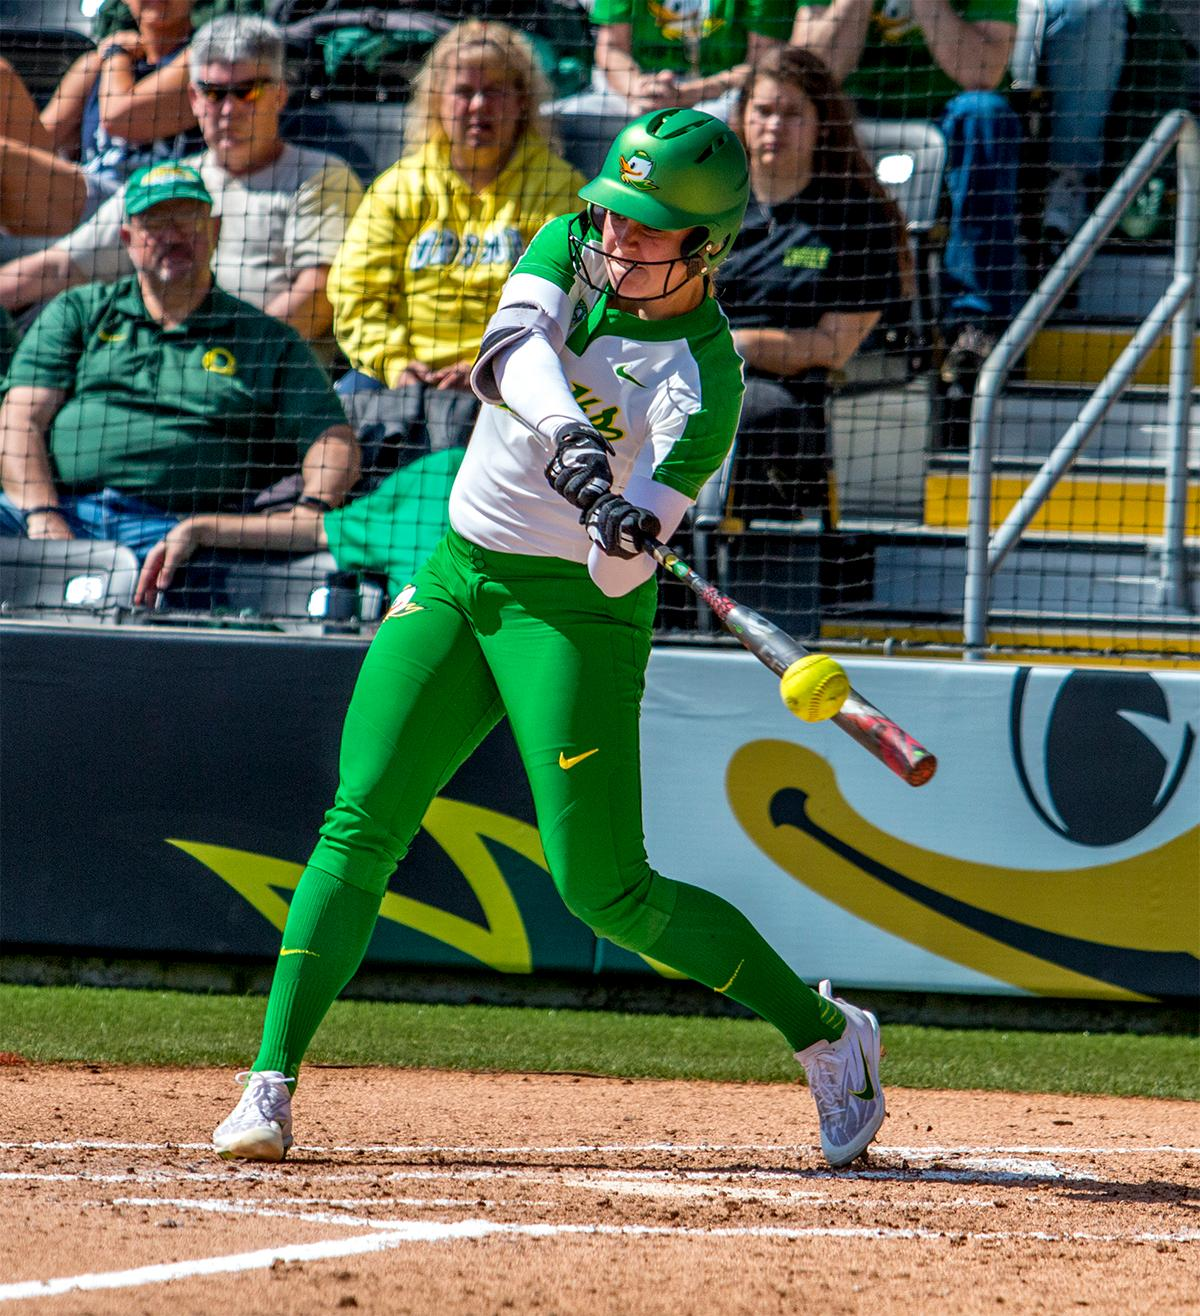 The Duck's Miranda Elish (#40) swings for the ball. The Oregon Ducks Softball team took their third win over the Arizona Sun Devils, 1-0, in the final game of the weekends series that saw the game go into an eighth inning before the Duck?s Mia Camuso (#7) scored a hit allowing teammate Haley Cruse (#26) to run into home plate for a point. The Ducks are now 33-0 this season and will next play a double header against Portland State on Tuesday, April 4 at Jane Sanders Stadium. Photo by August Frank, Oregon News Lab